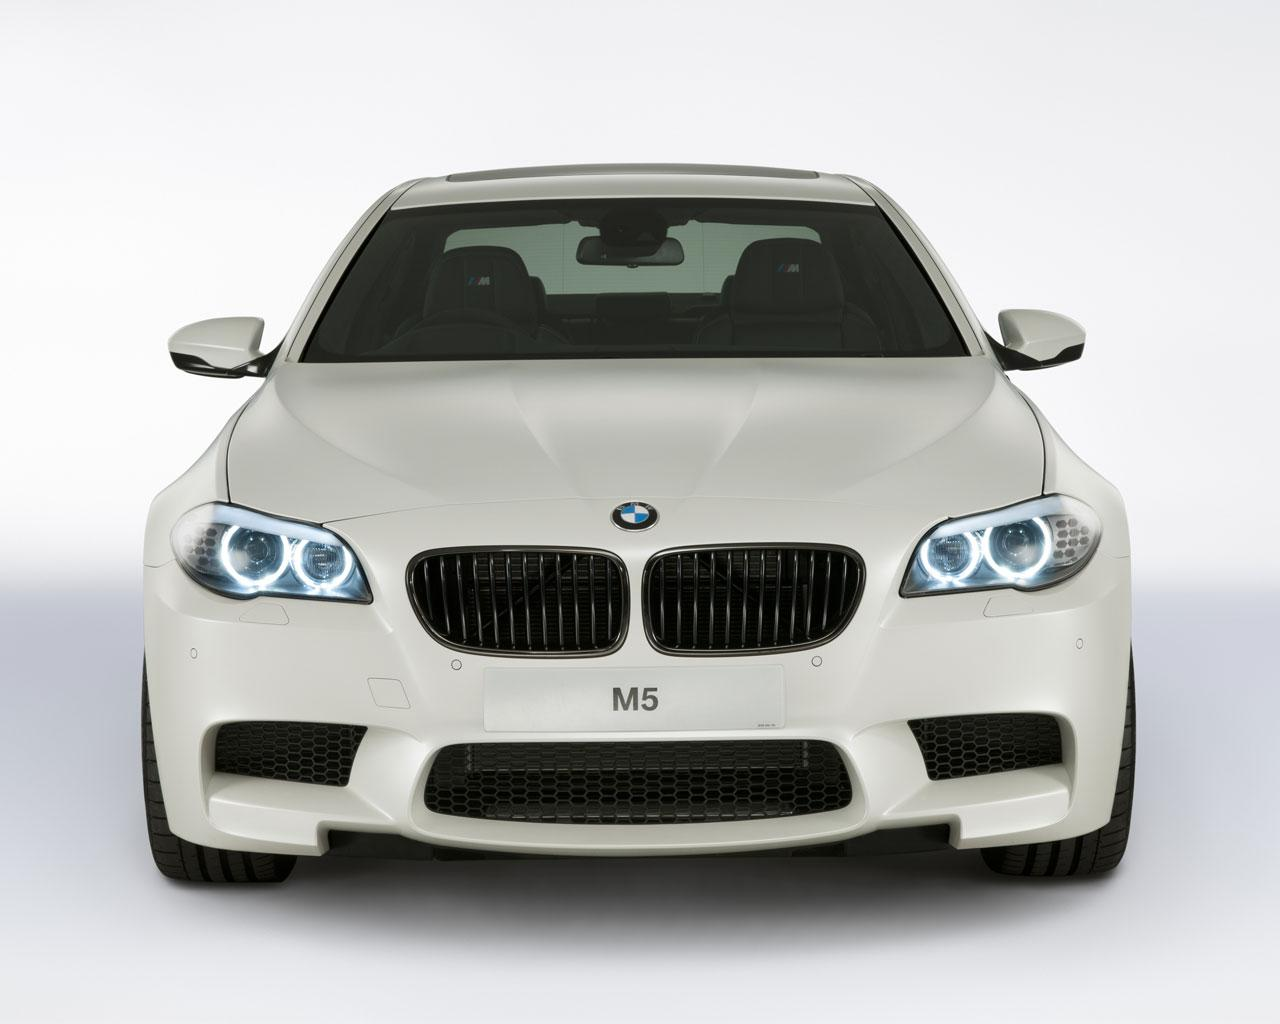 2012 Bmw M5 M Performance Edition Details And Pricing Autoevolution